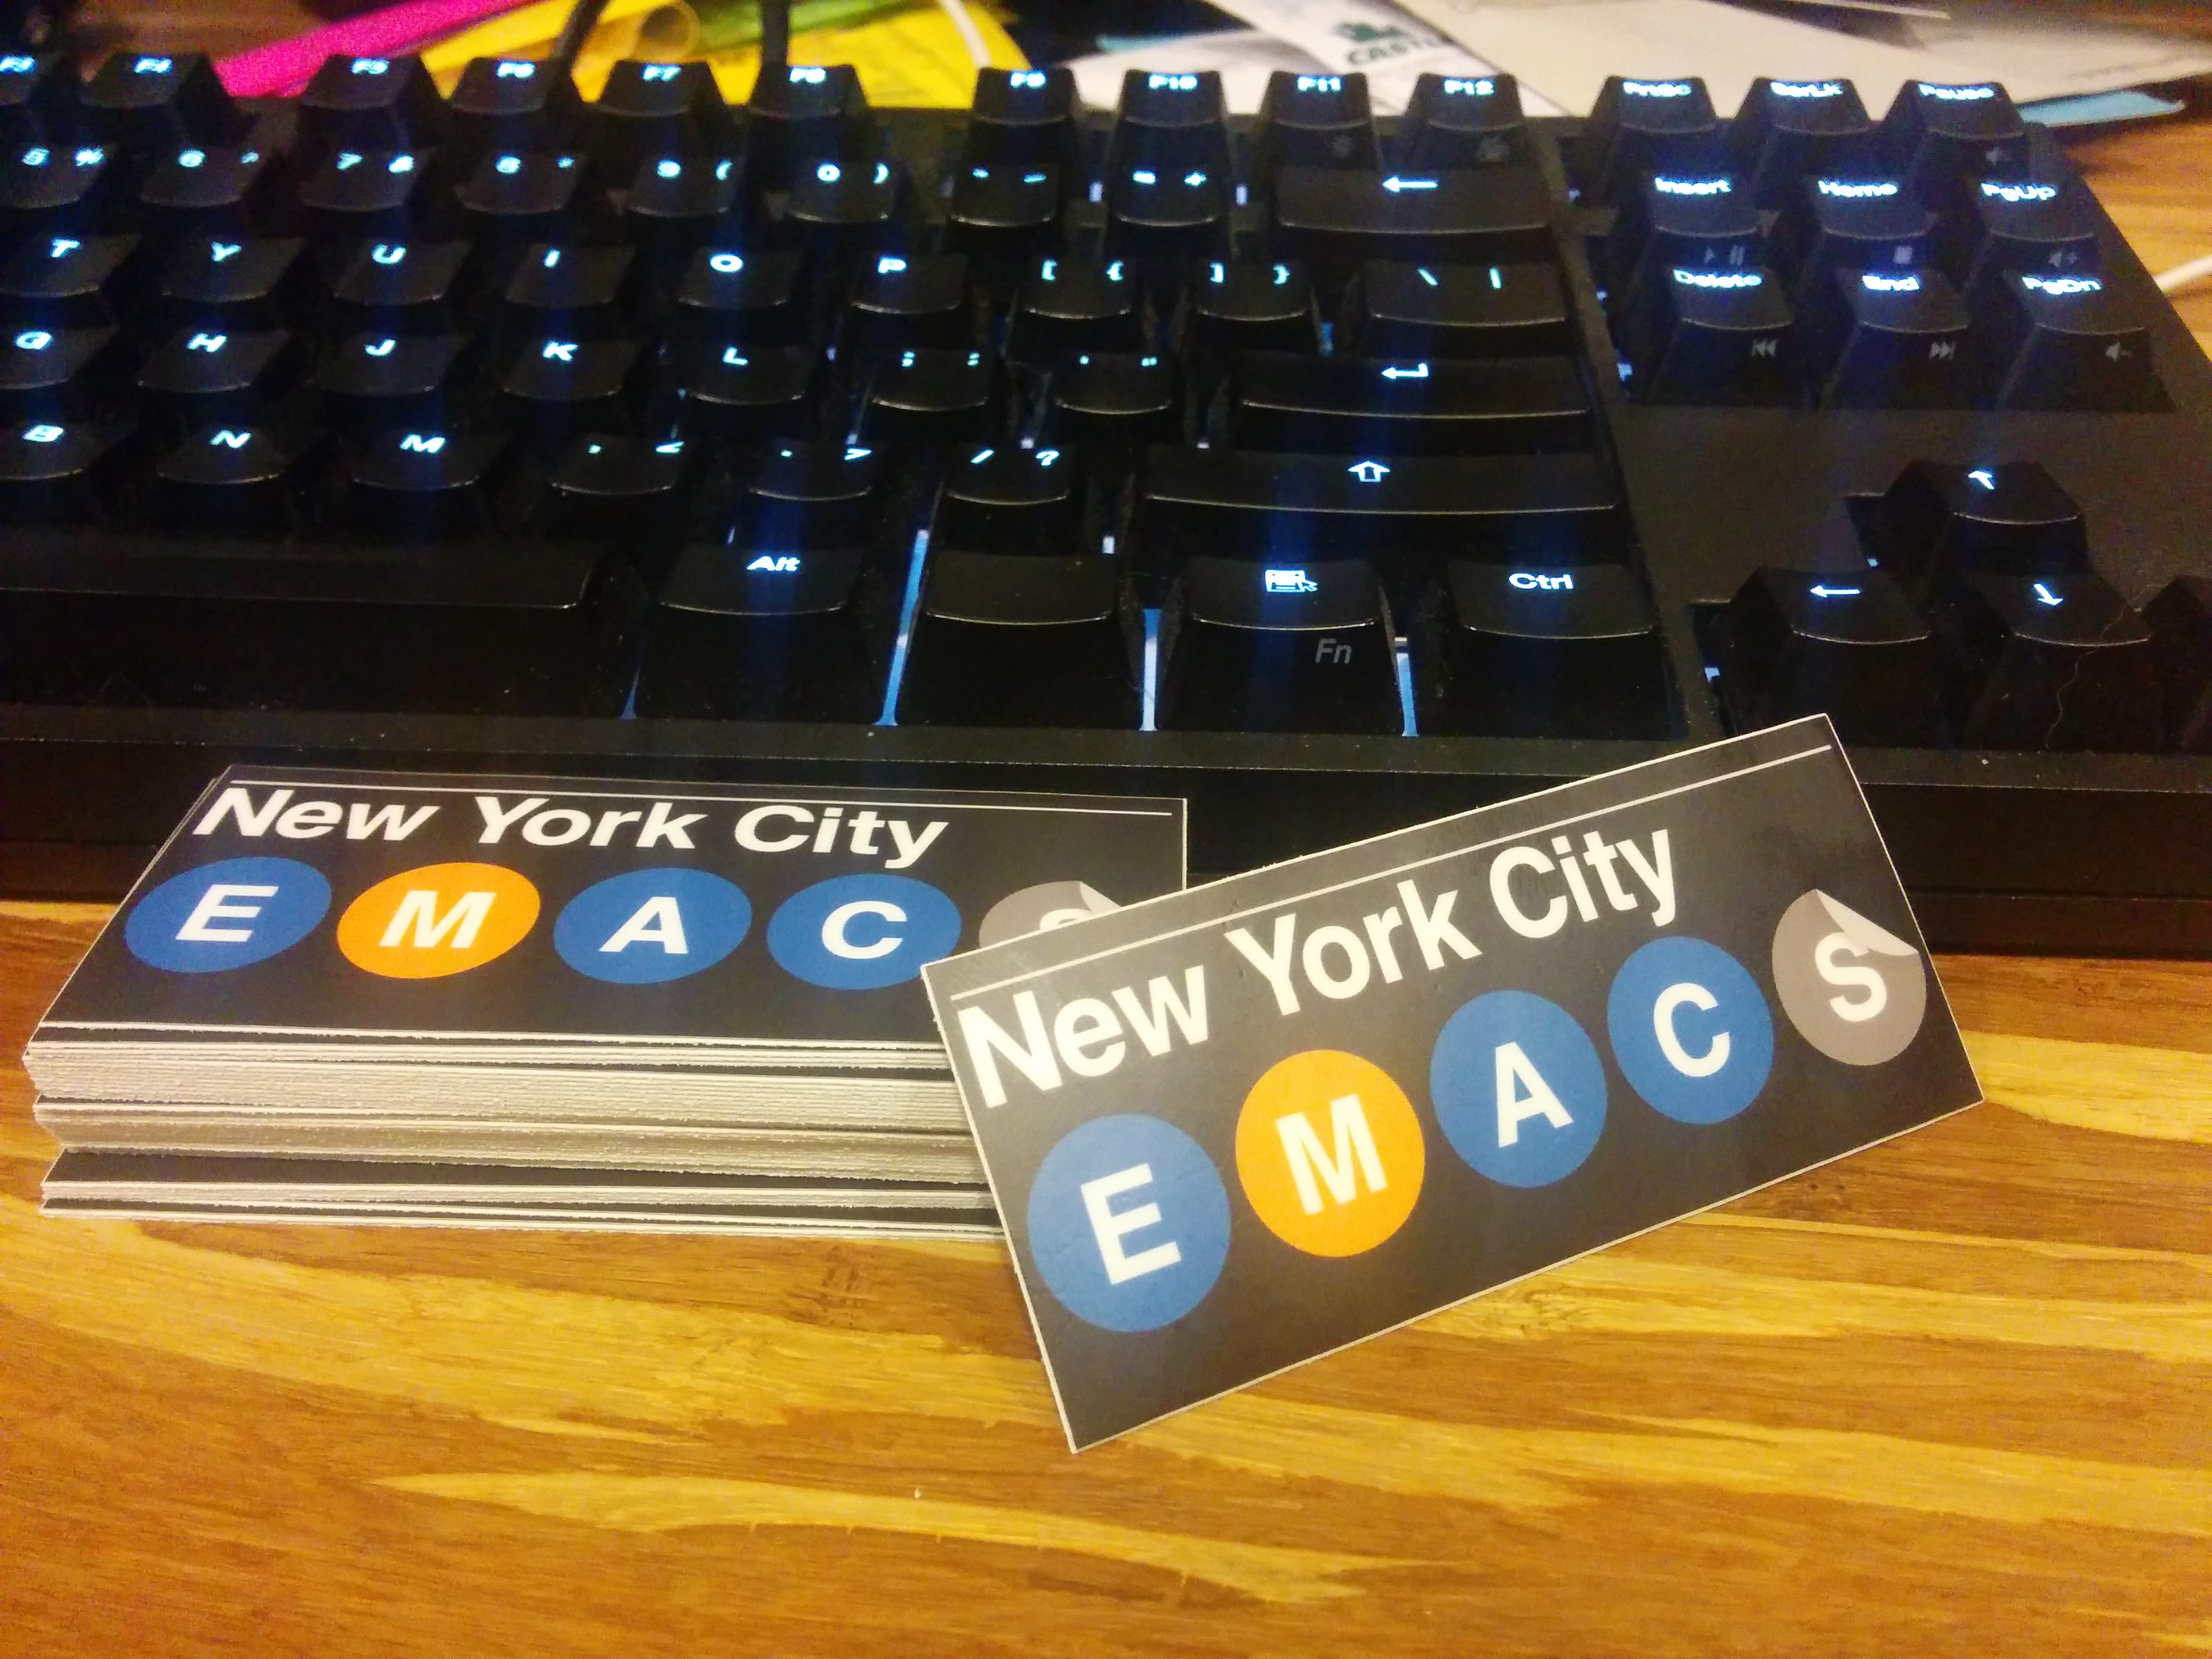 EmacsNYC sticker